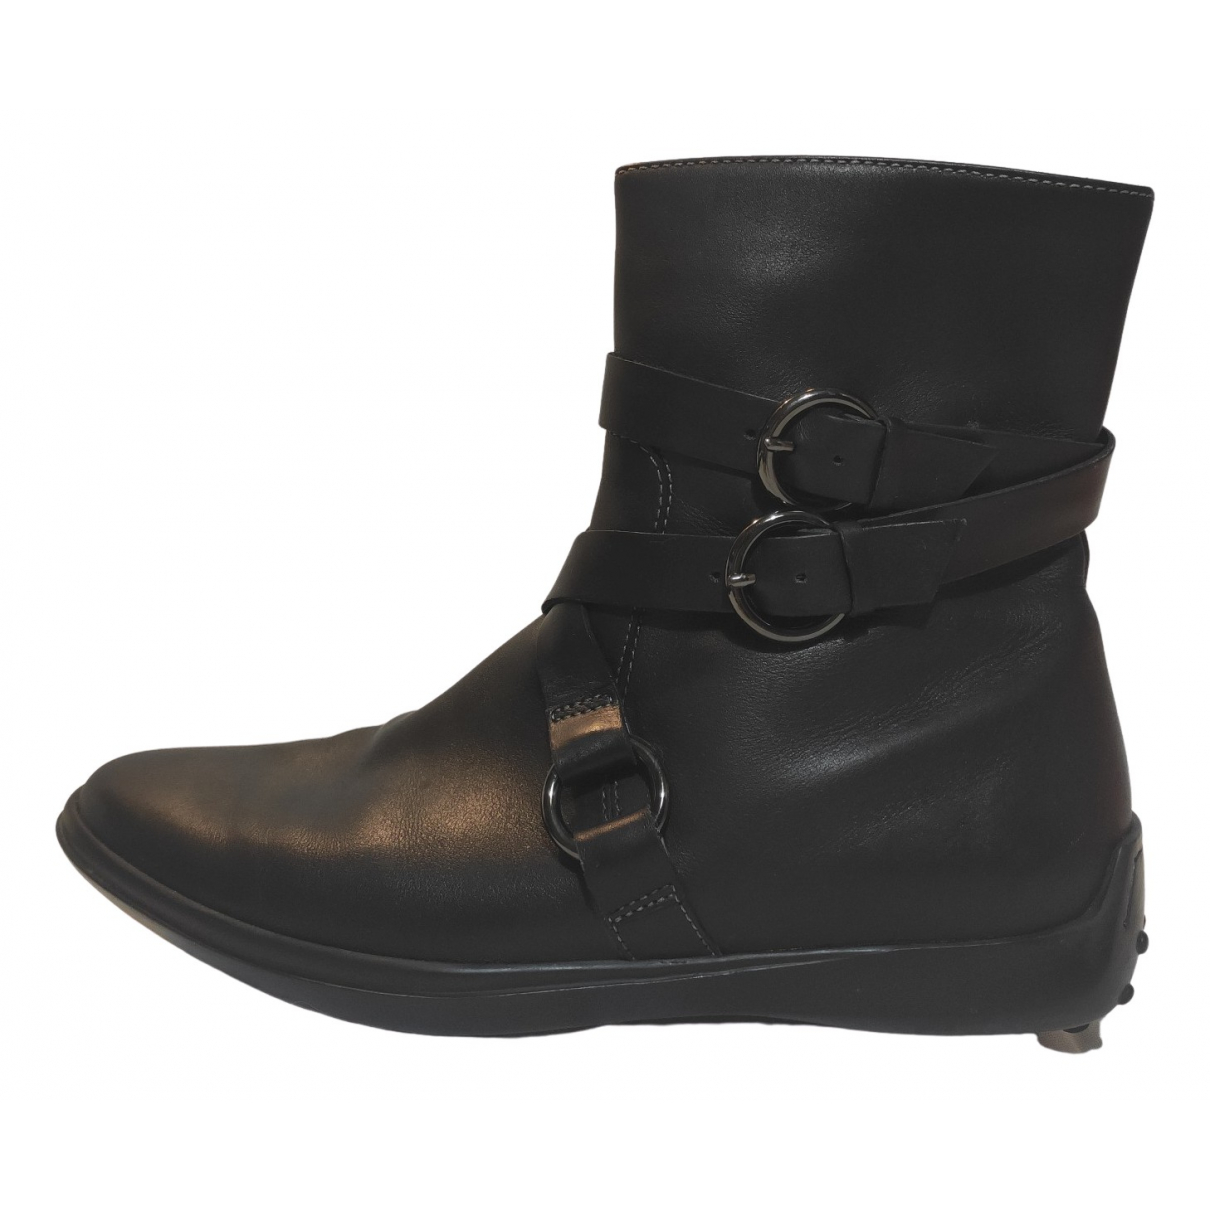 Tod's N Black Leather Ankle boots for Women 36.5 EU